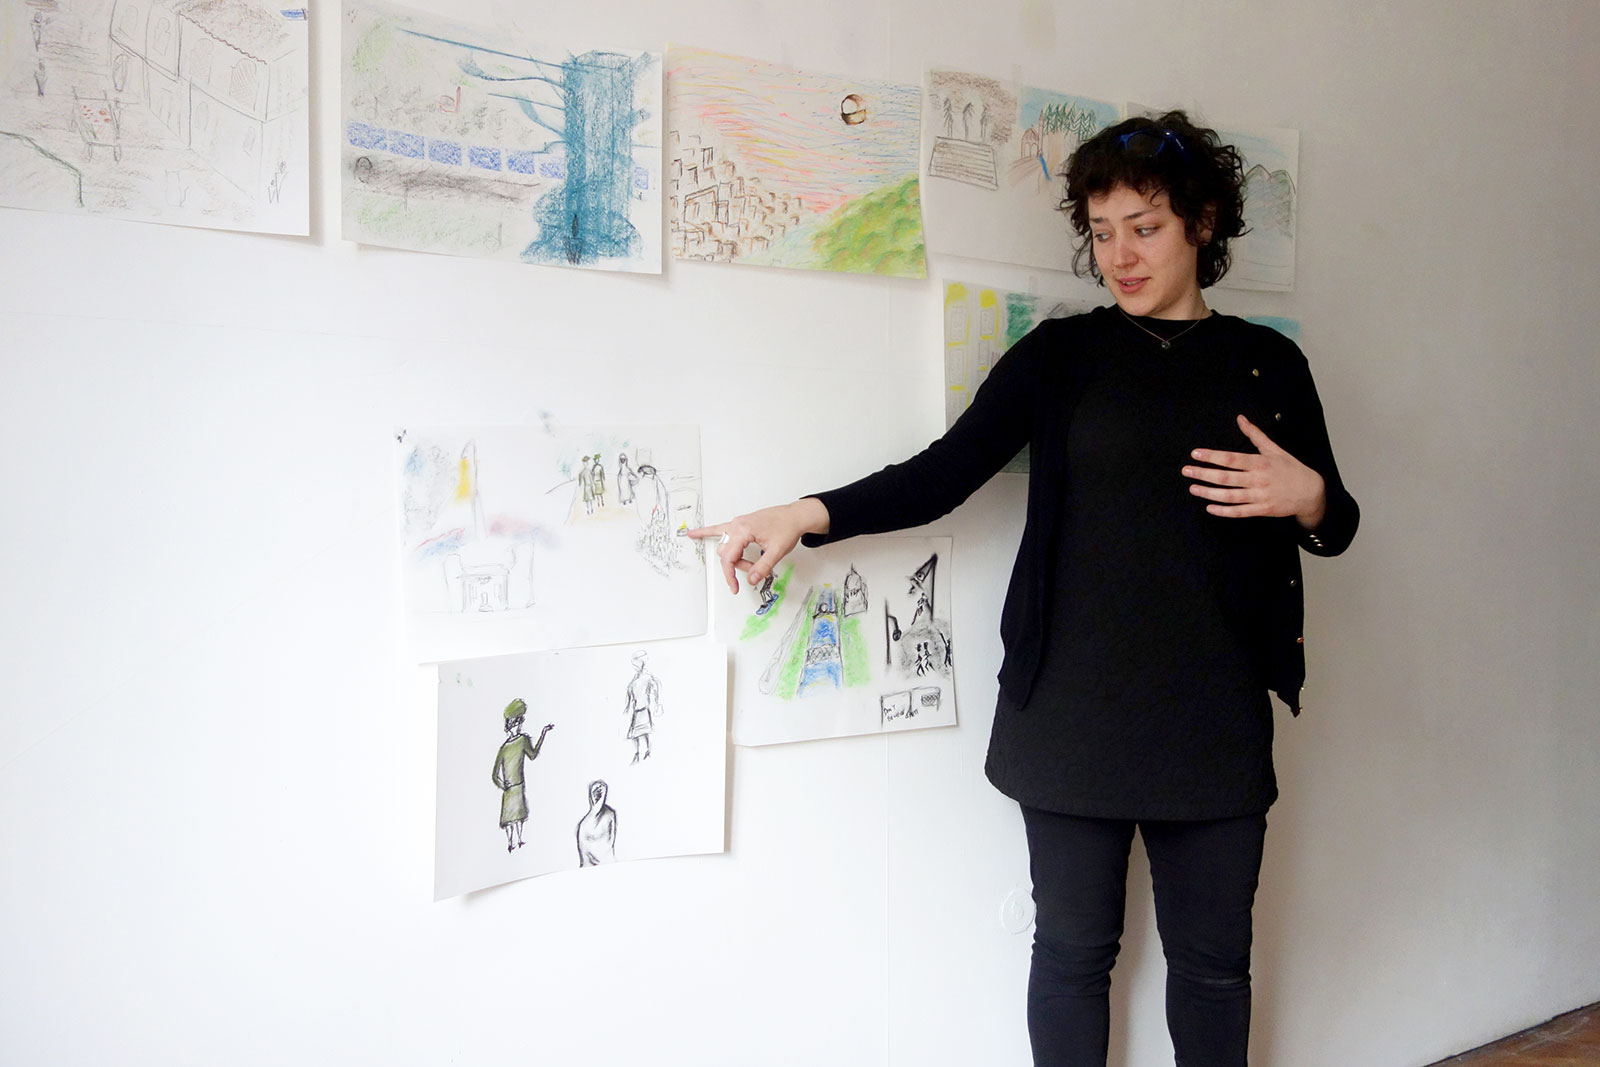 Participant presenting her drawings and imaginations